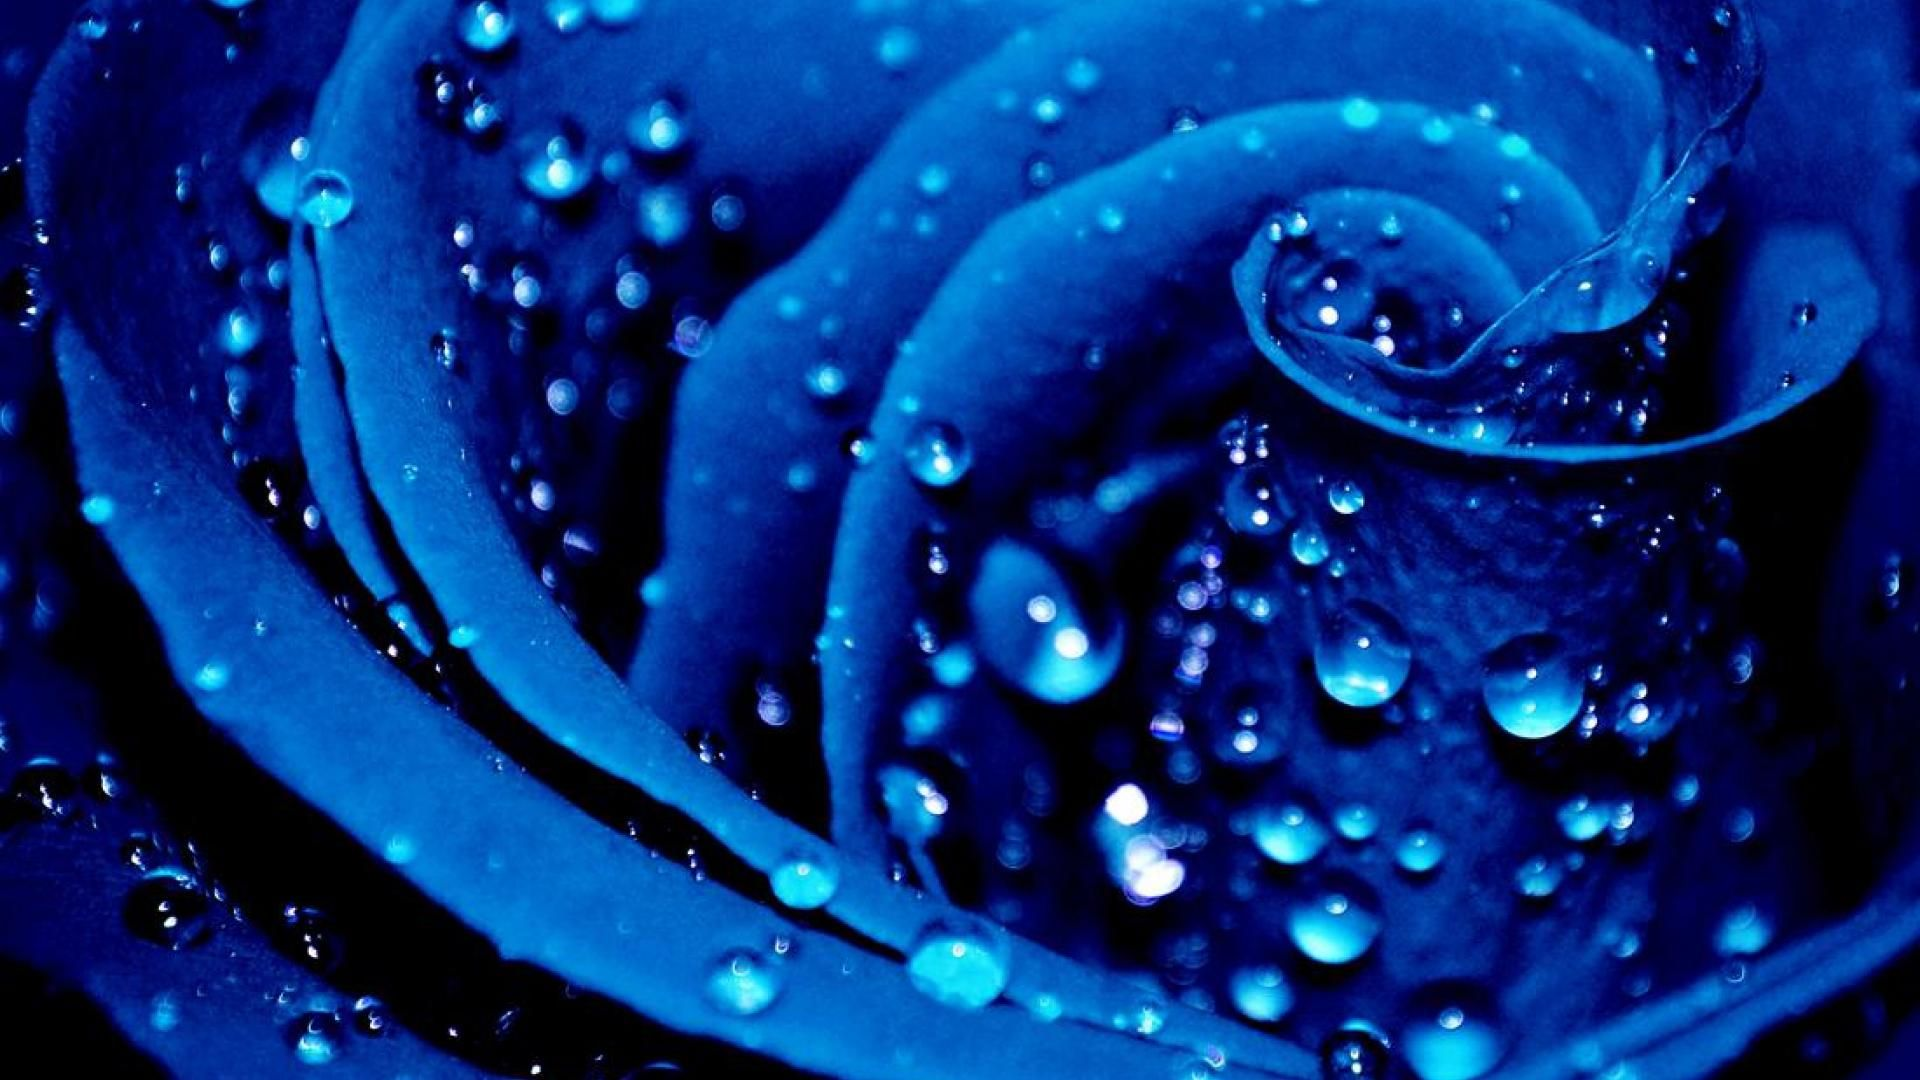 A Red Rose Turned Blue Via Wonderful Work In Photoshop